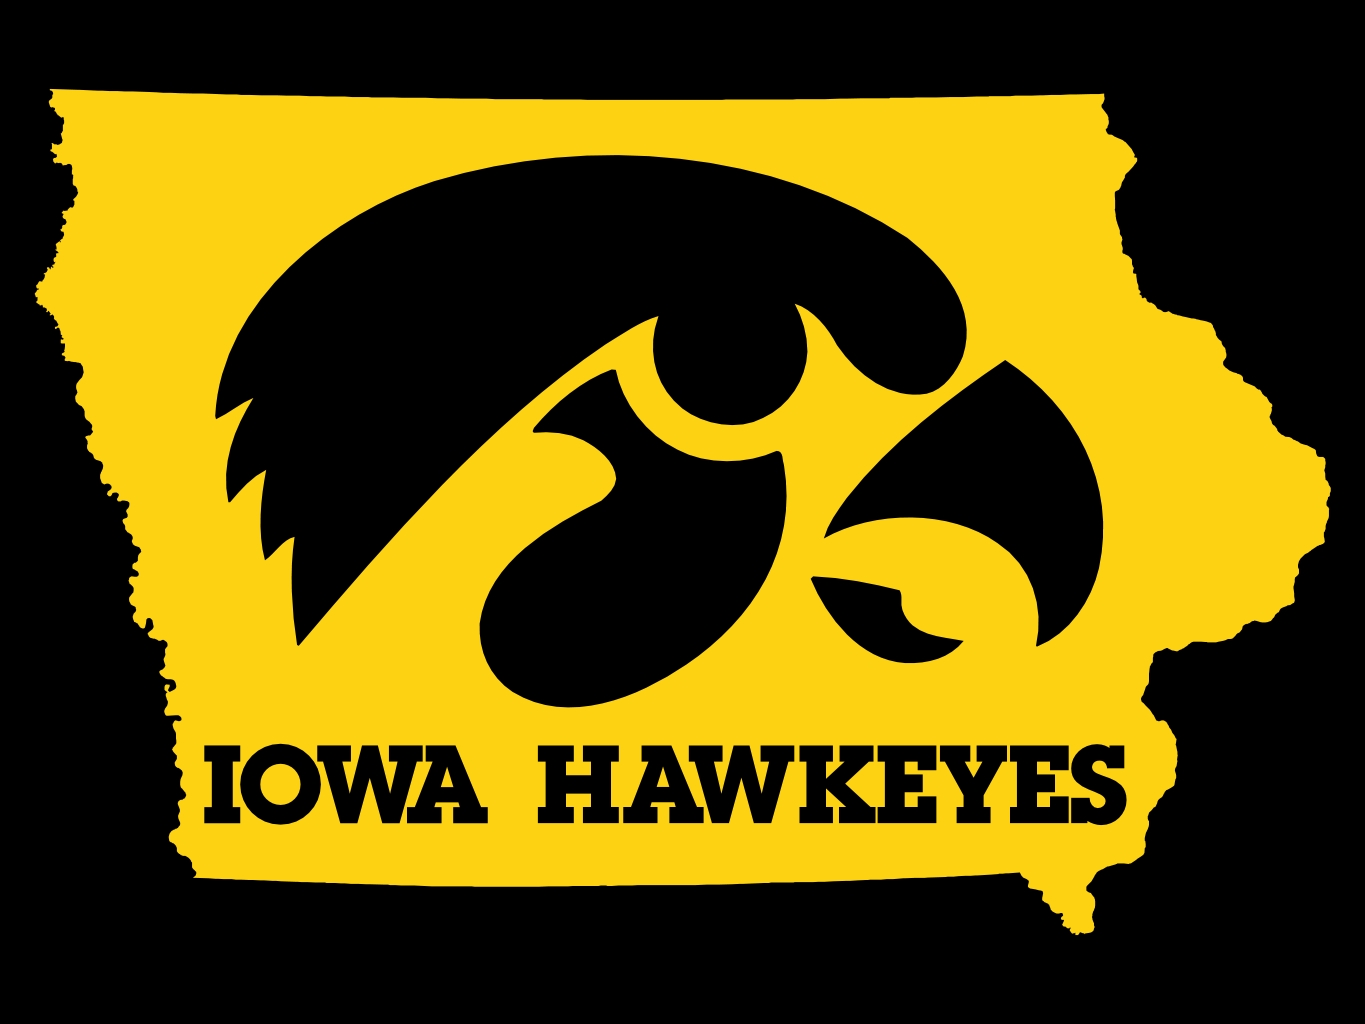 Iowa Hawkeye Wallpaper Screensavers - WallpaperSafari